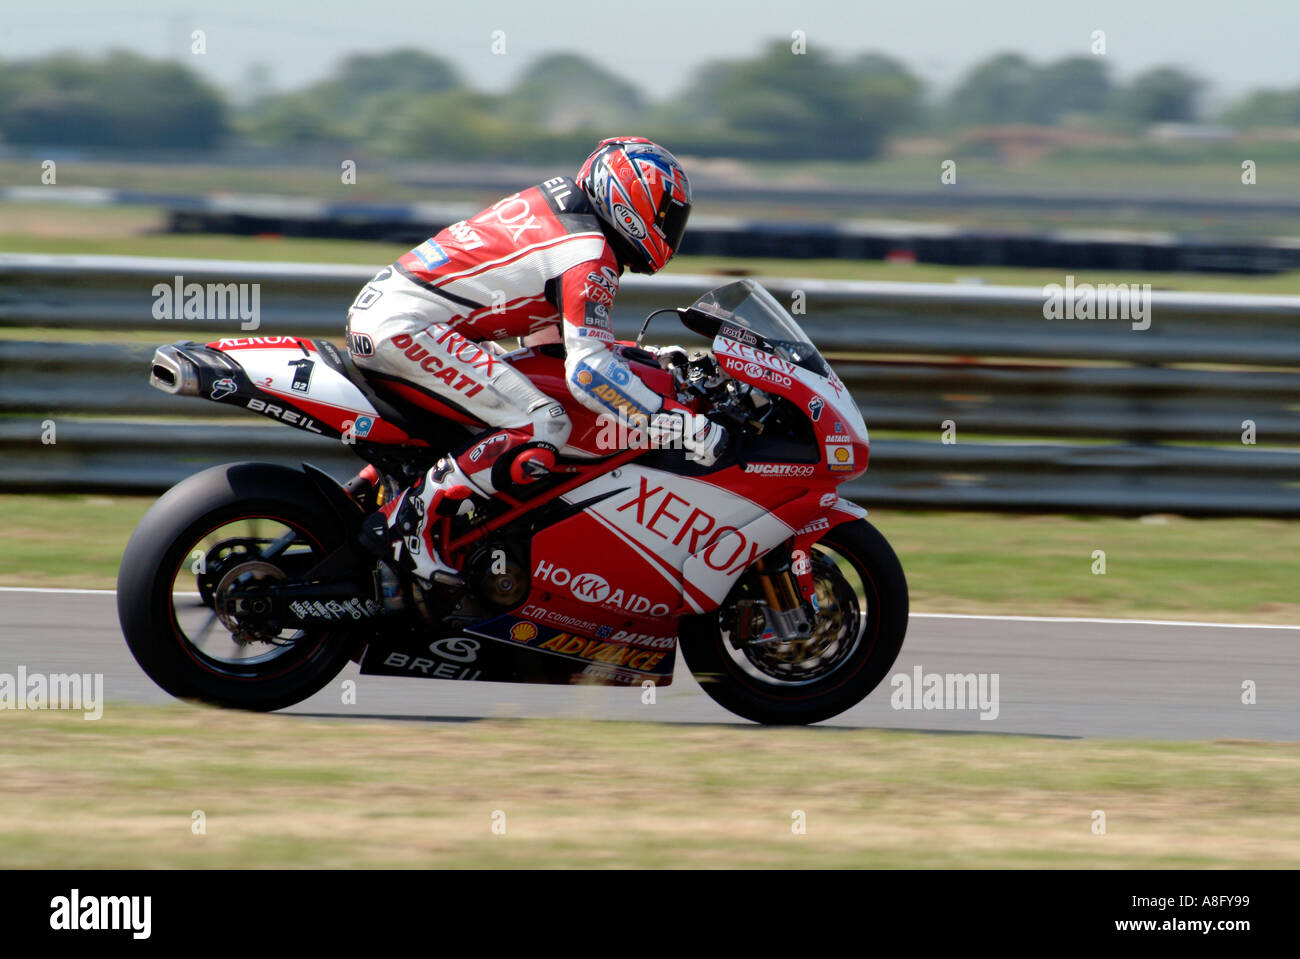 James Toseland on his Ducati at Silverstone - Stock Image